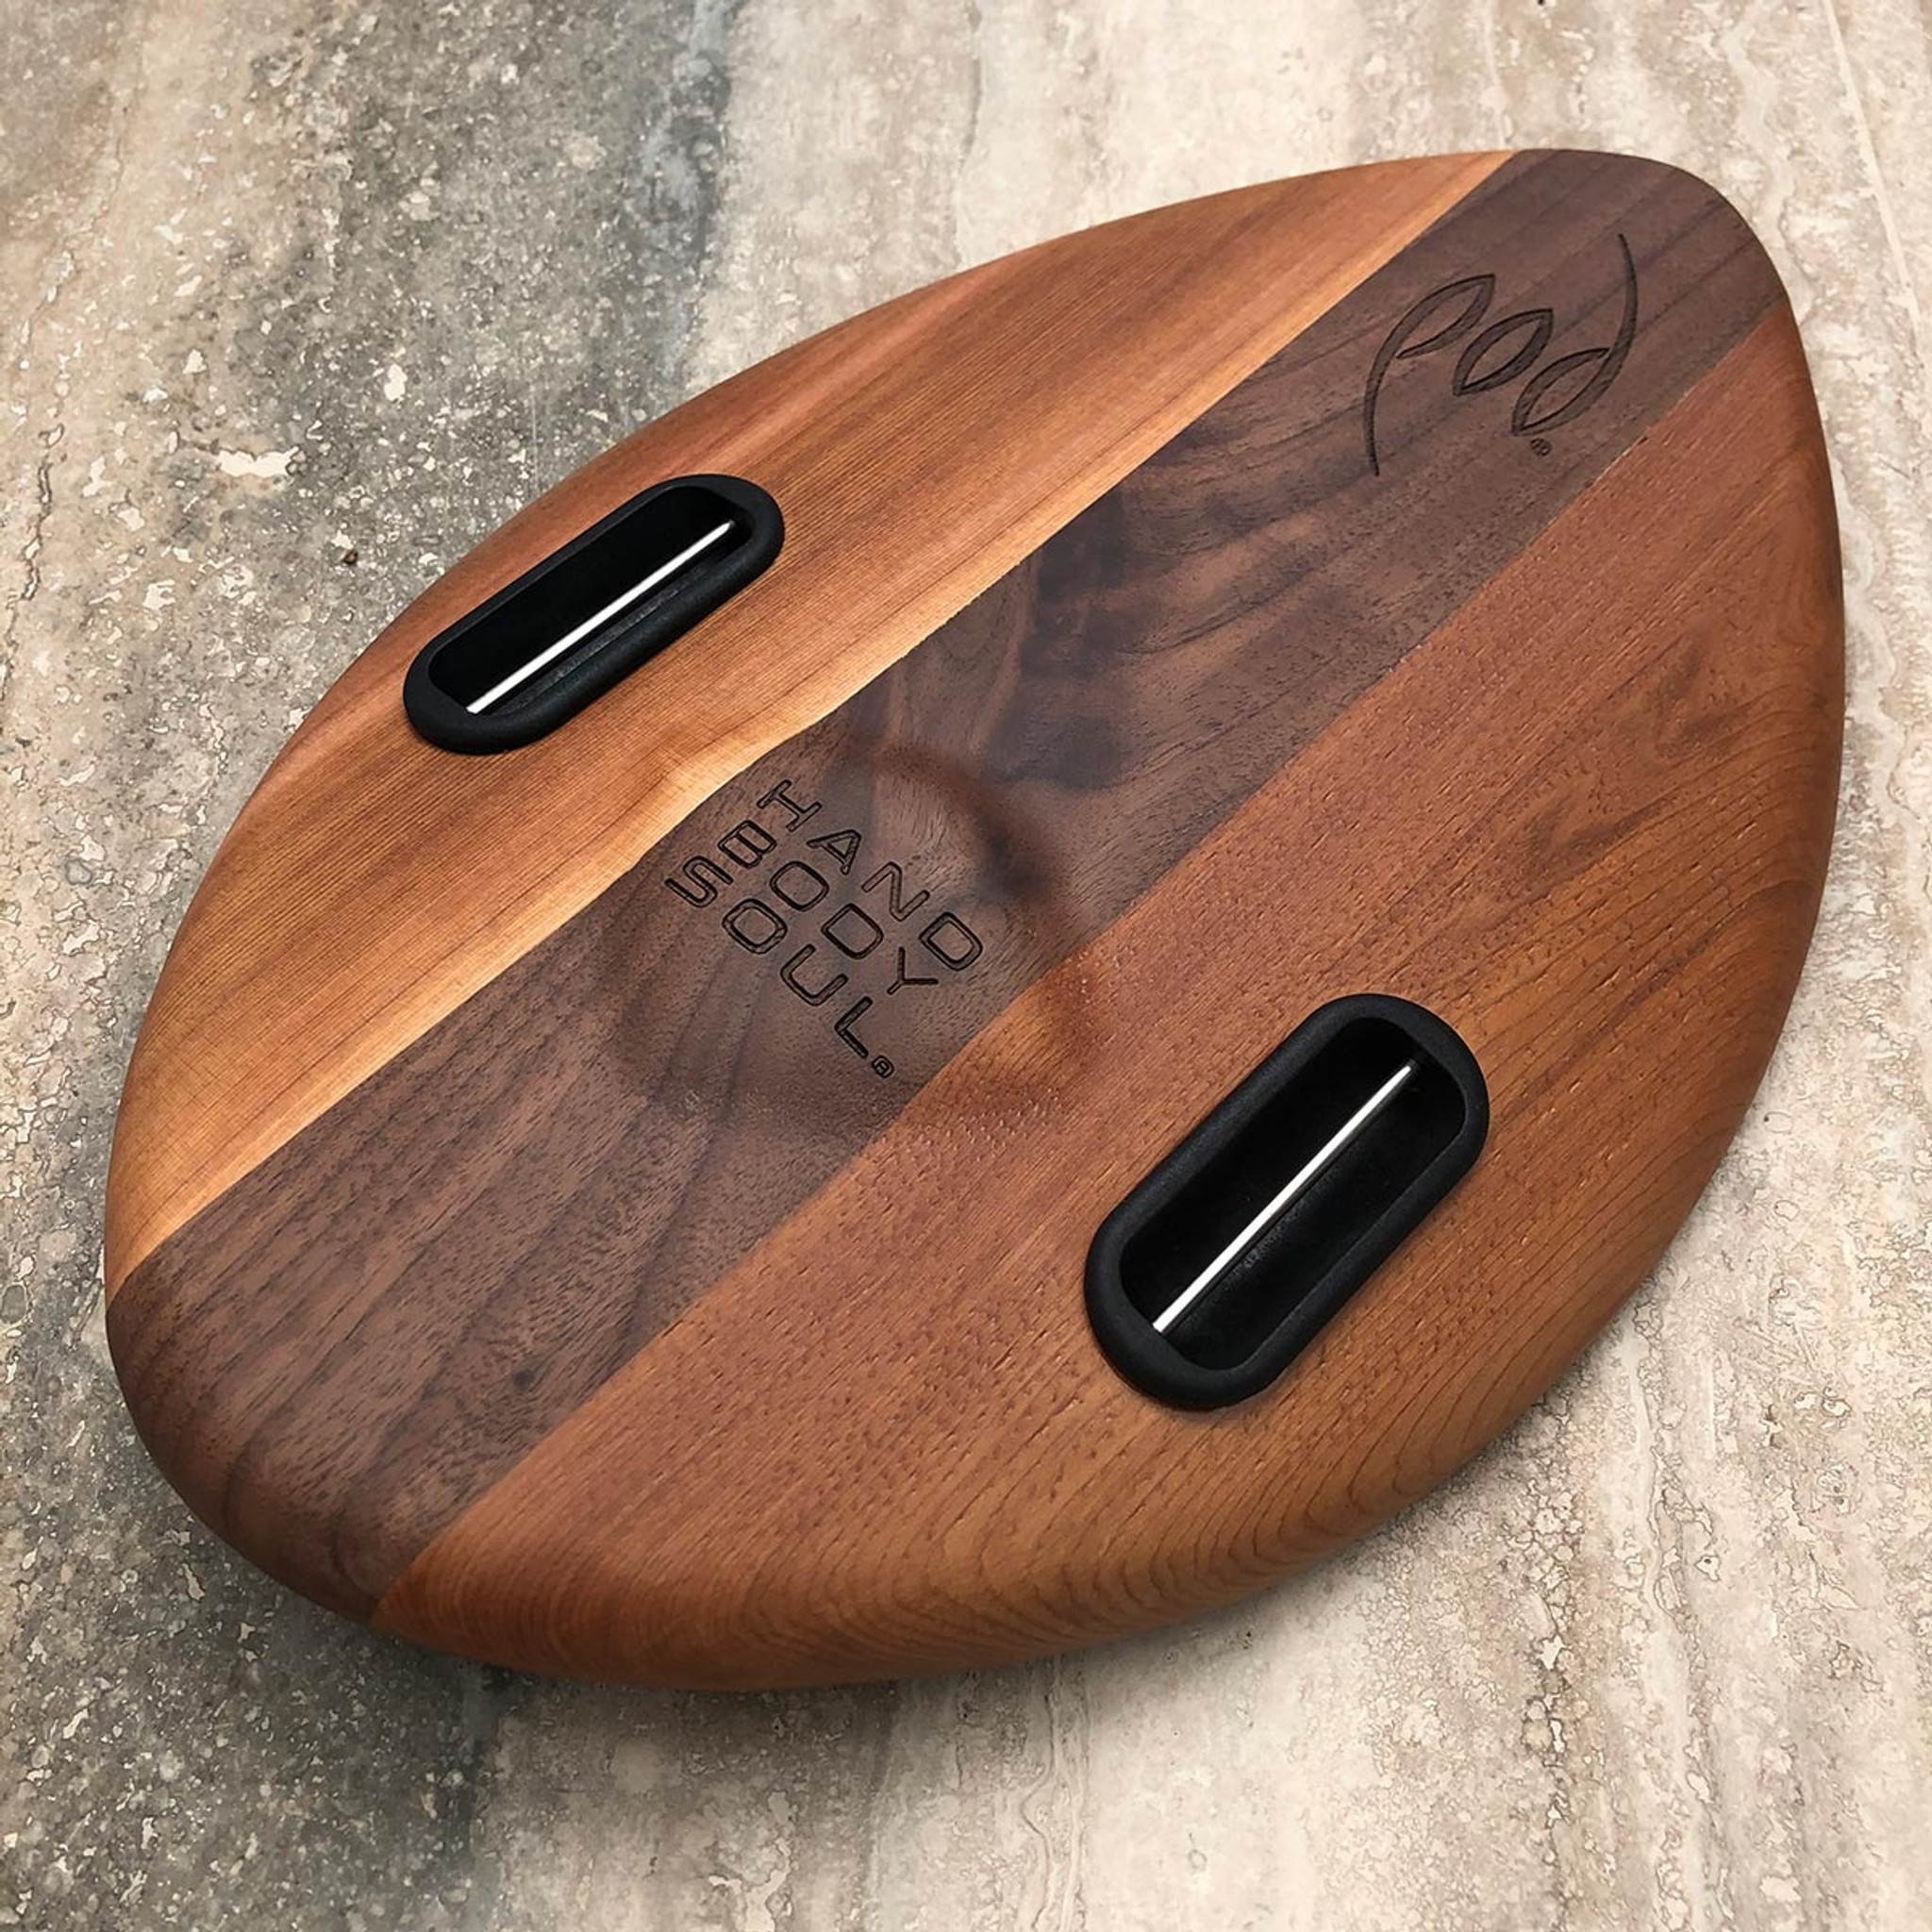 WOO 300mm 12inch Wood POD Handboards - Bodysurfing Handplane